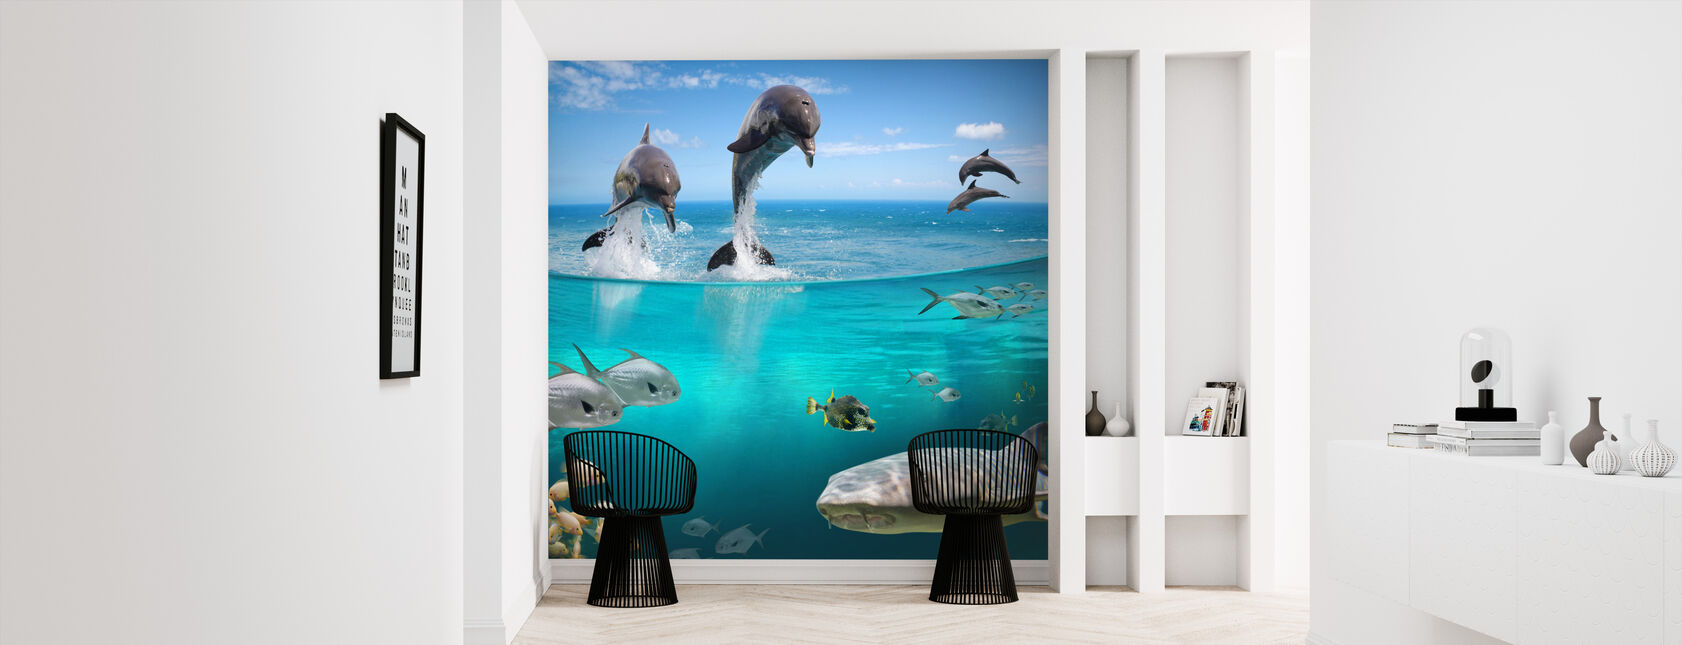 Sea Life - Wallpaper - Hallway